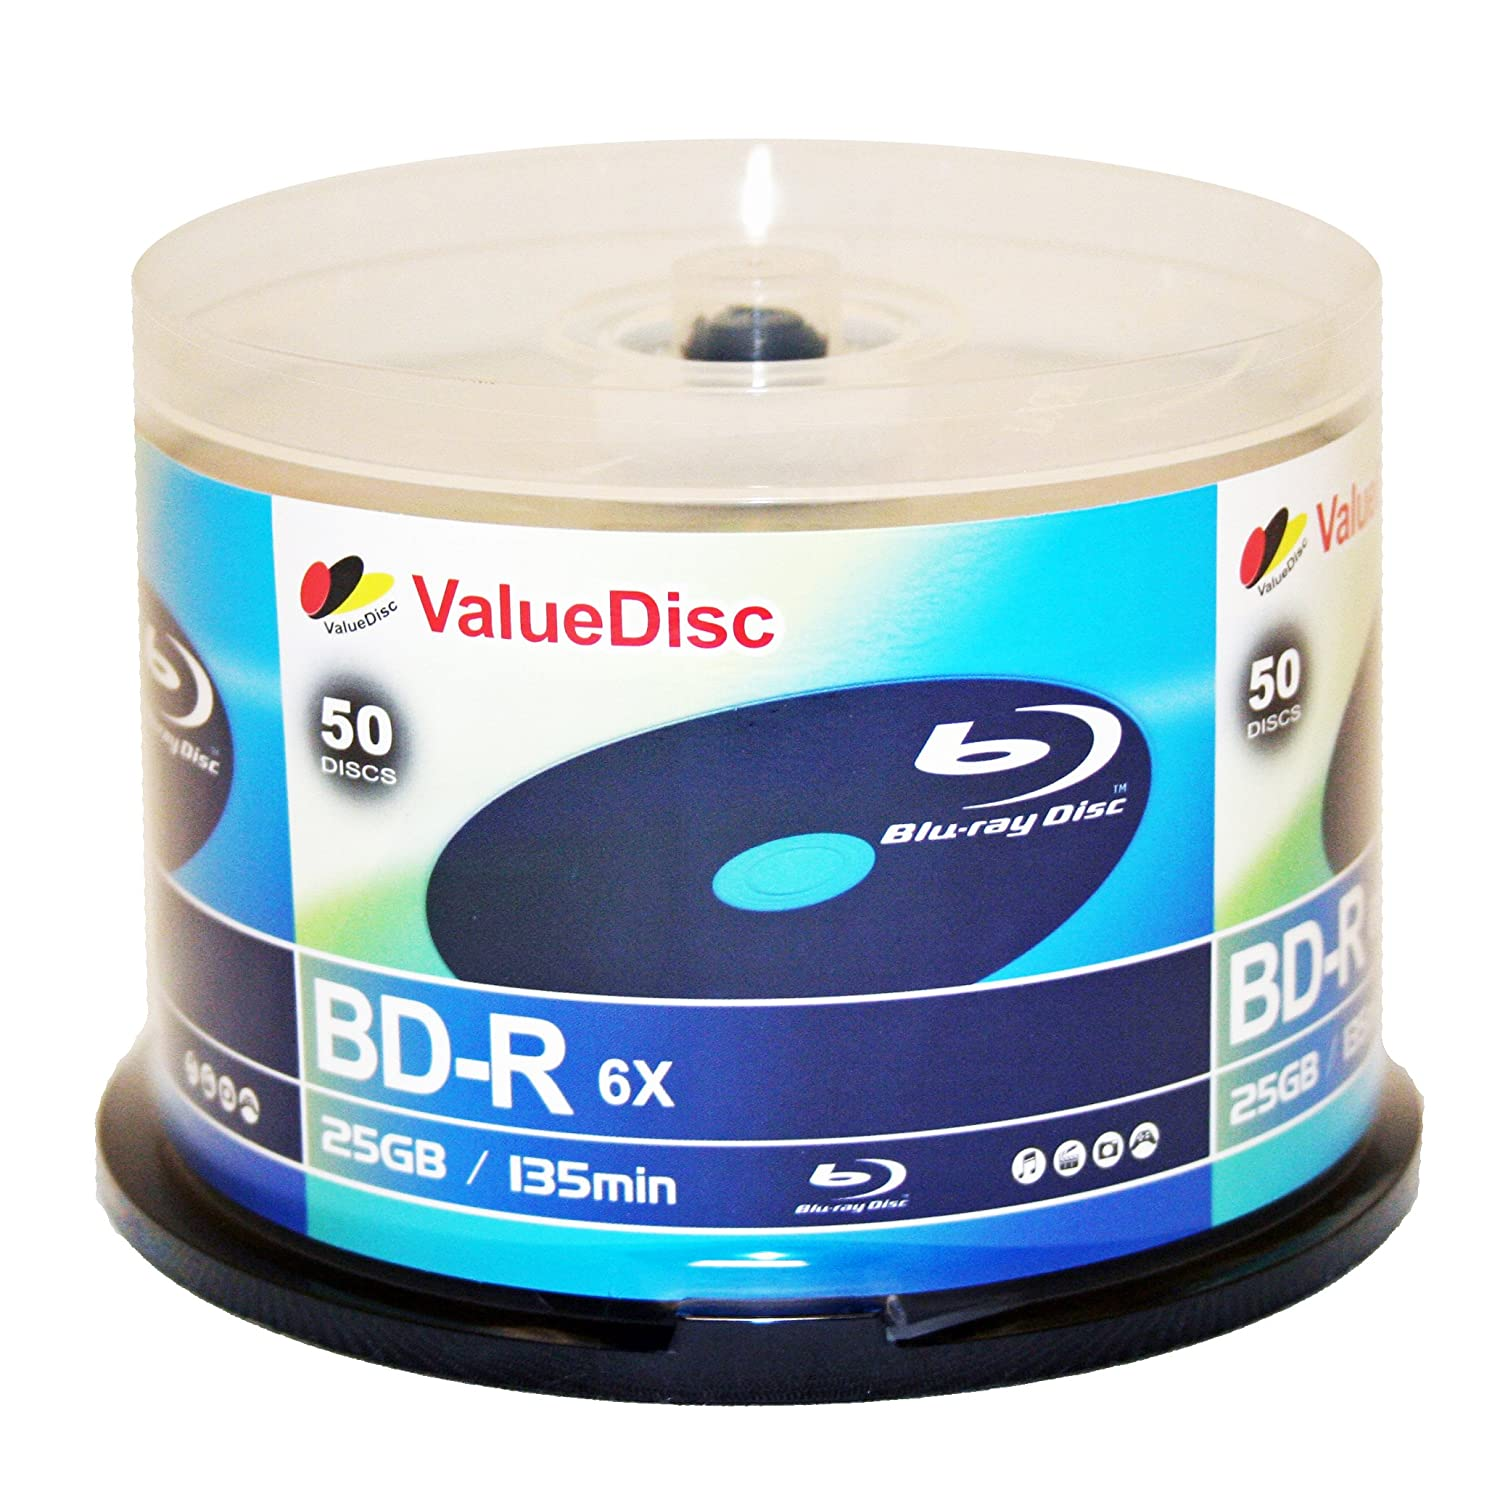 Value Disc BD-R 6X 25GB Blu-Ray 50 Pack Blank Discs in Spindle. Made in Taiwan VDBR0650P